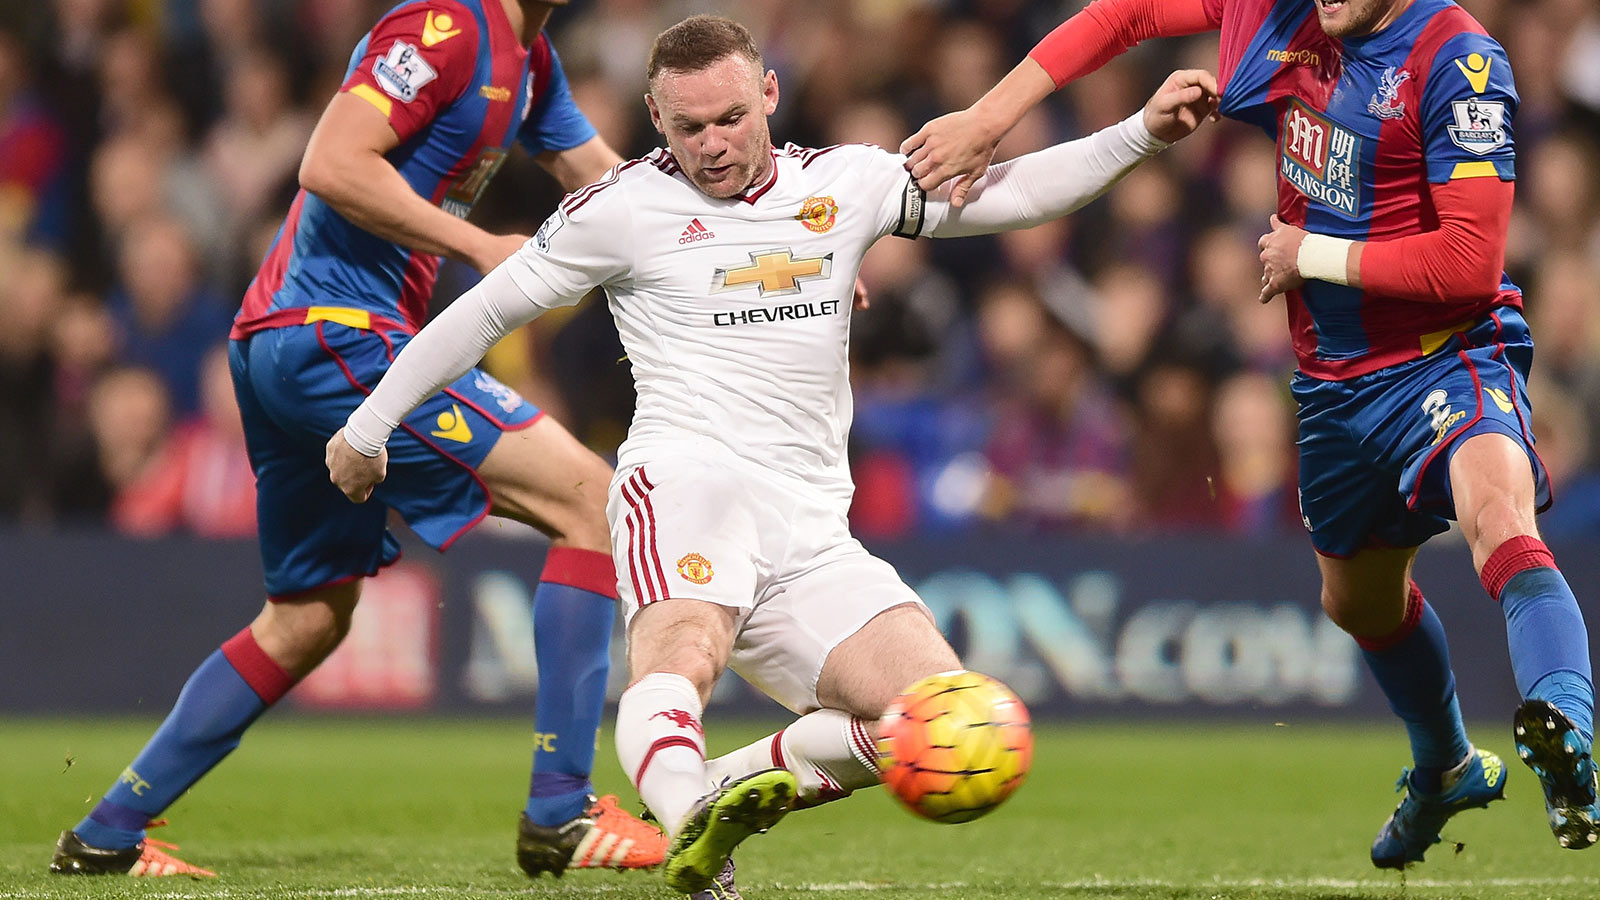 Manchester United held, Leicester up to third in Premier League